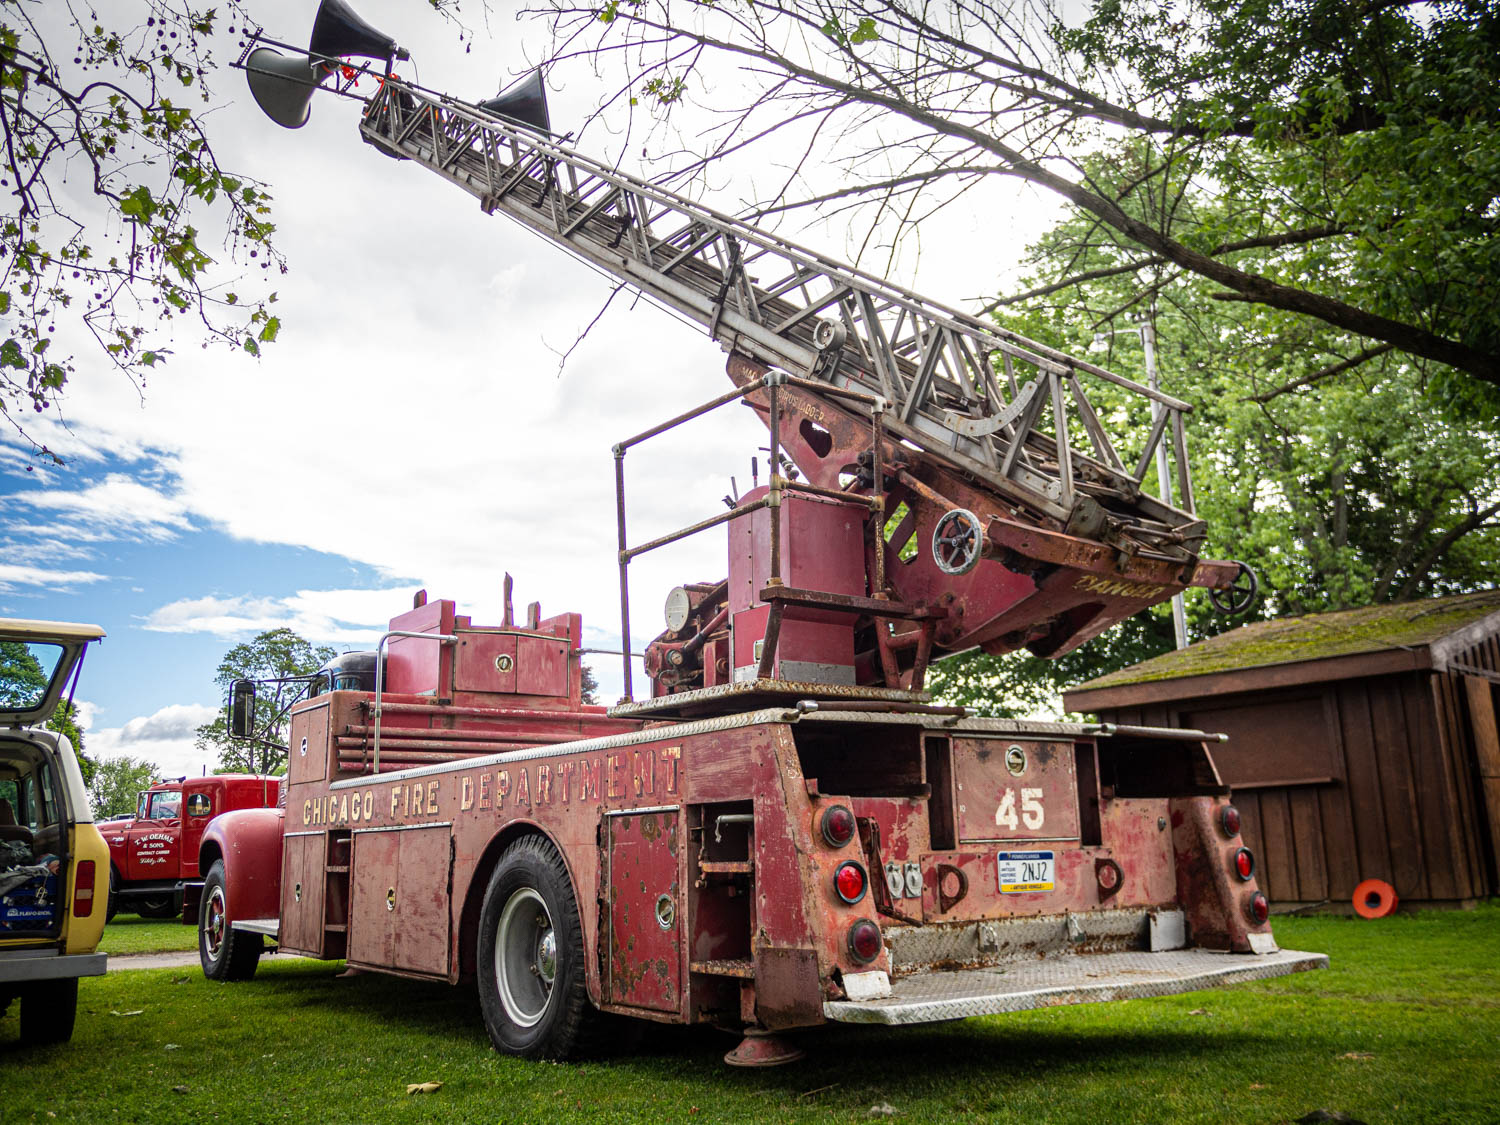 This ancient Mack ladder truck was repurposed as the meet's PA system. Quite handy.